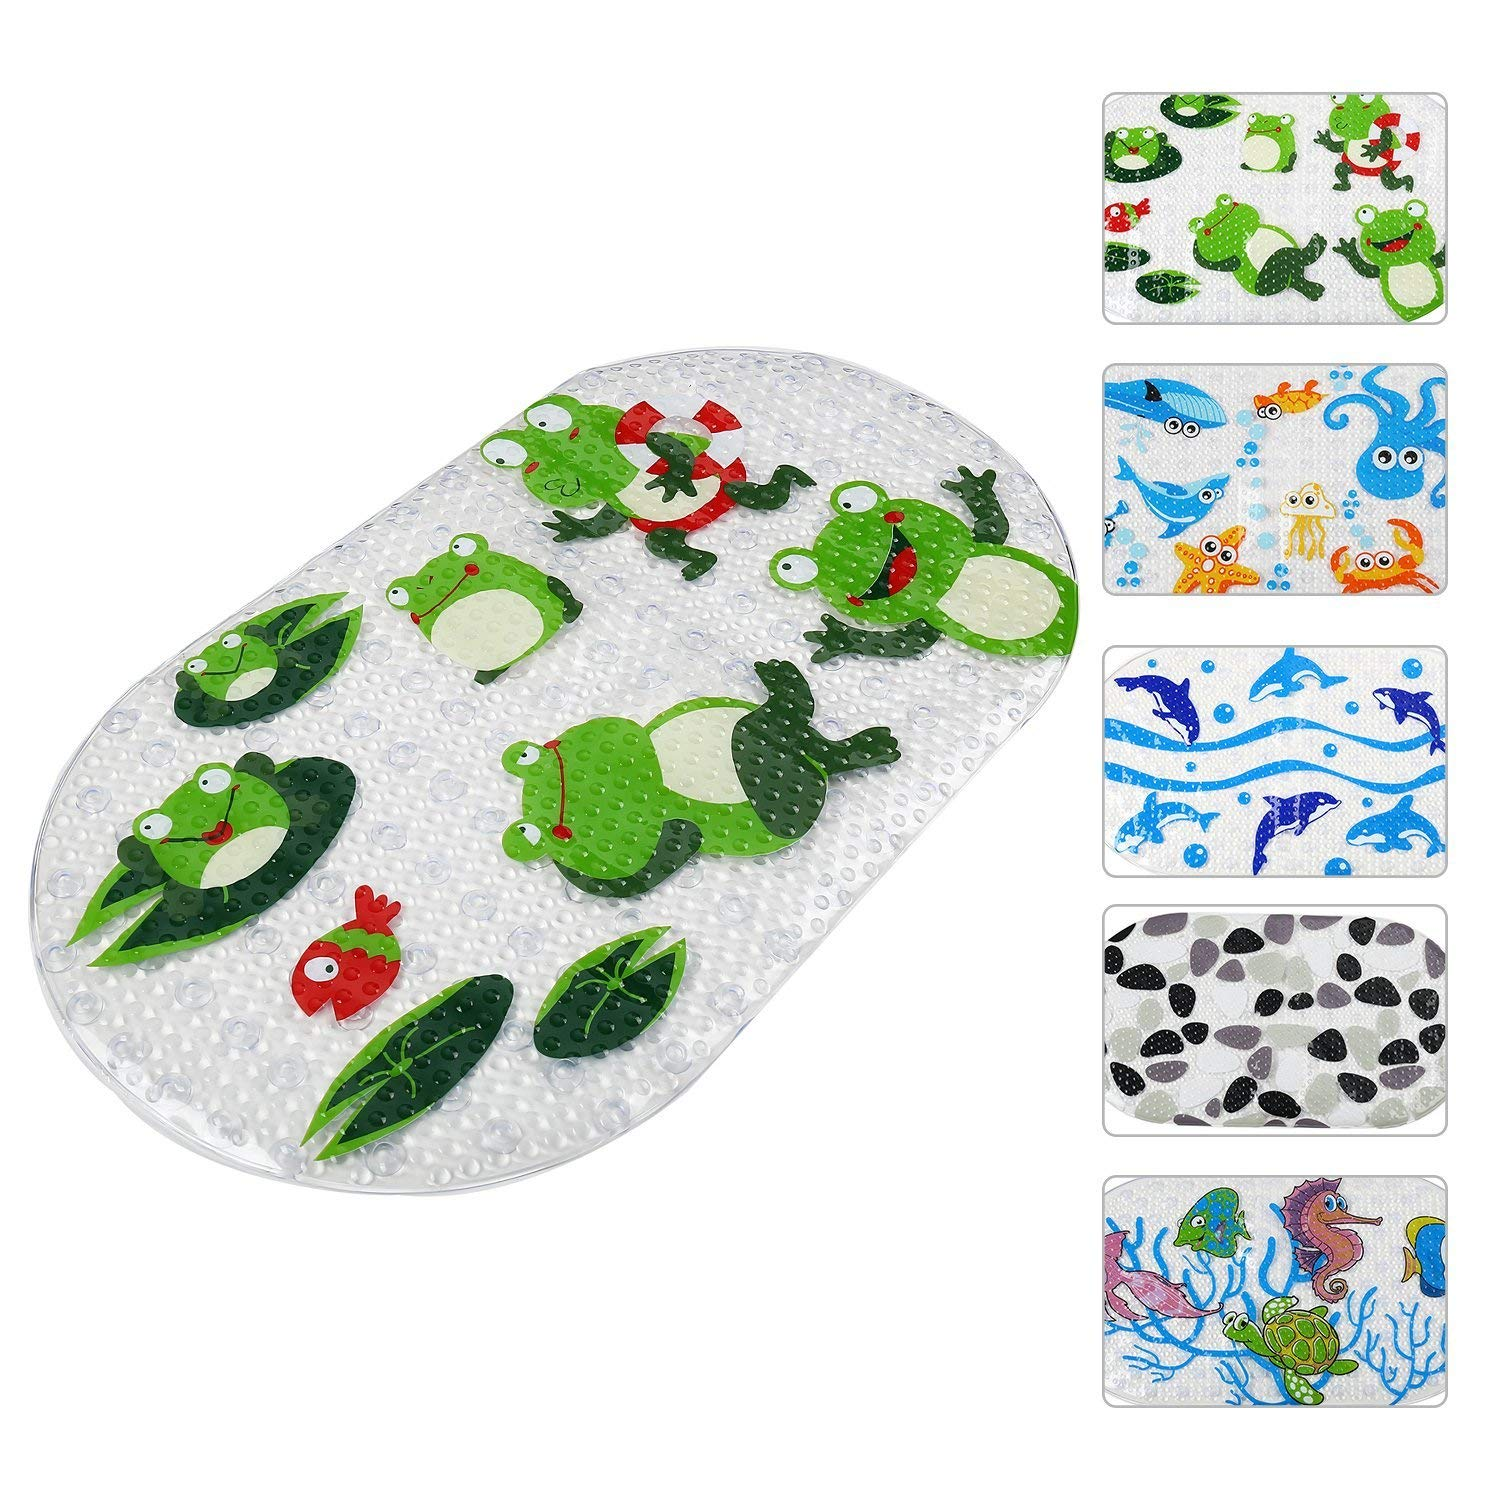 FUNK Bath Mat for Shower Non Slip Bath Mat for Kids Baby, Anti Bacterial Cute Cartoon Print Shower Mat,Phthalate Free,Latex and Machine Washable Oval Bathtub Mat-Kids Frog(27x15 Inch)